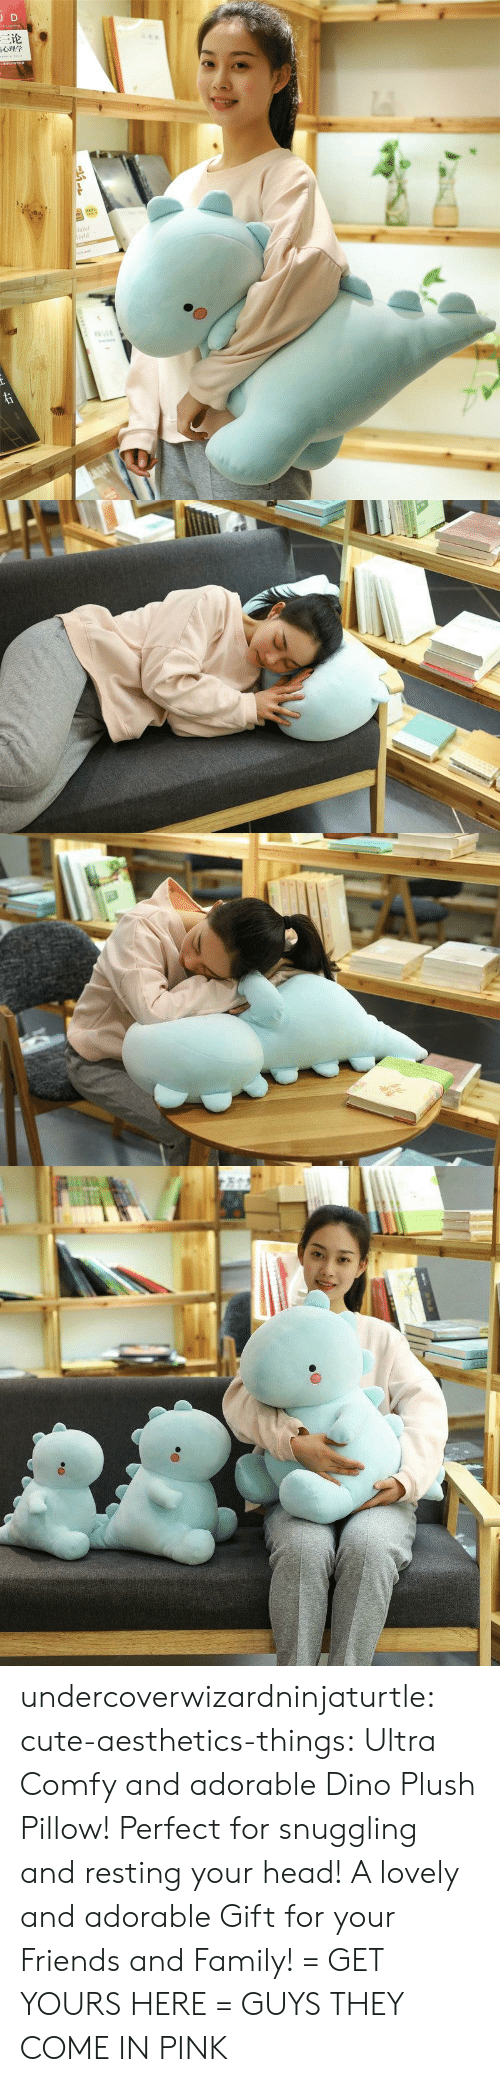 dino: JD  三论  laint  orld  TNAR  ww.e undercoverwizardninjaturtle: cute-aesthetics-things:   Ultra Comfy and adorable Dino Plush Pillow! Perfect for snuggling and resting your head! A lovely and adorable Gift for your Friends and Family! = GET YOURS HERE =   GUYS THEY COME IN PINK